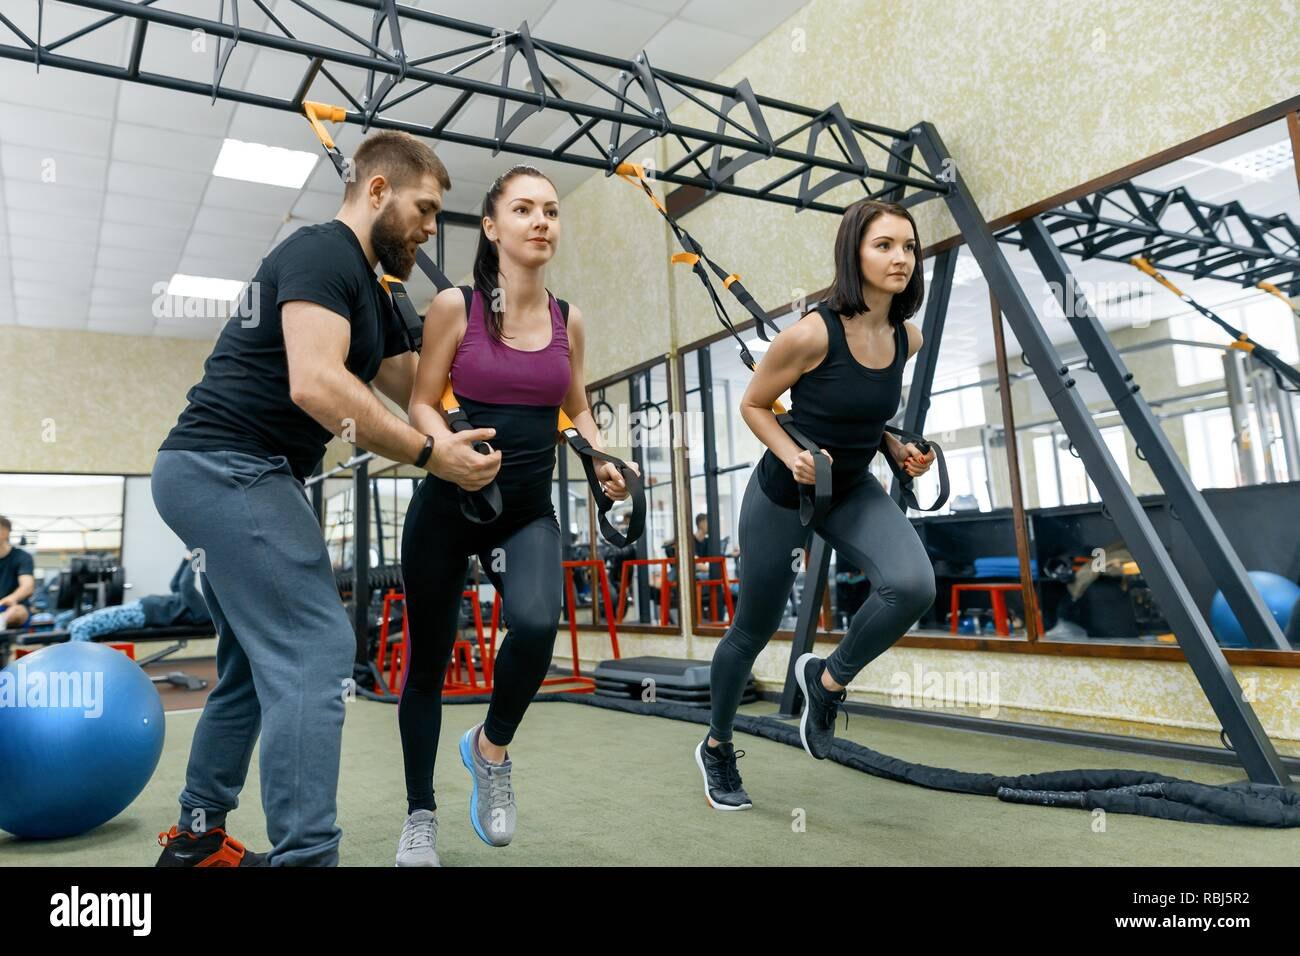 Fitness trainer coaching and helping women doing exercises on cross fit  using straps system in gym. Sport, teamwork, training, people concept Stock  Photo - Alamy